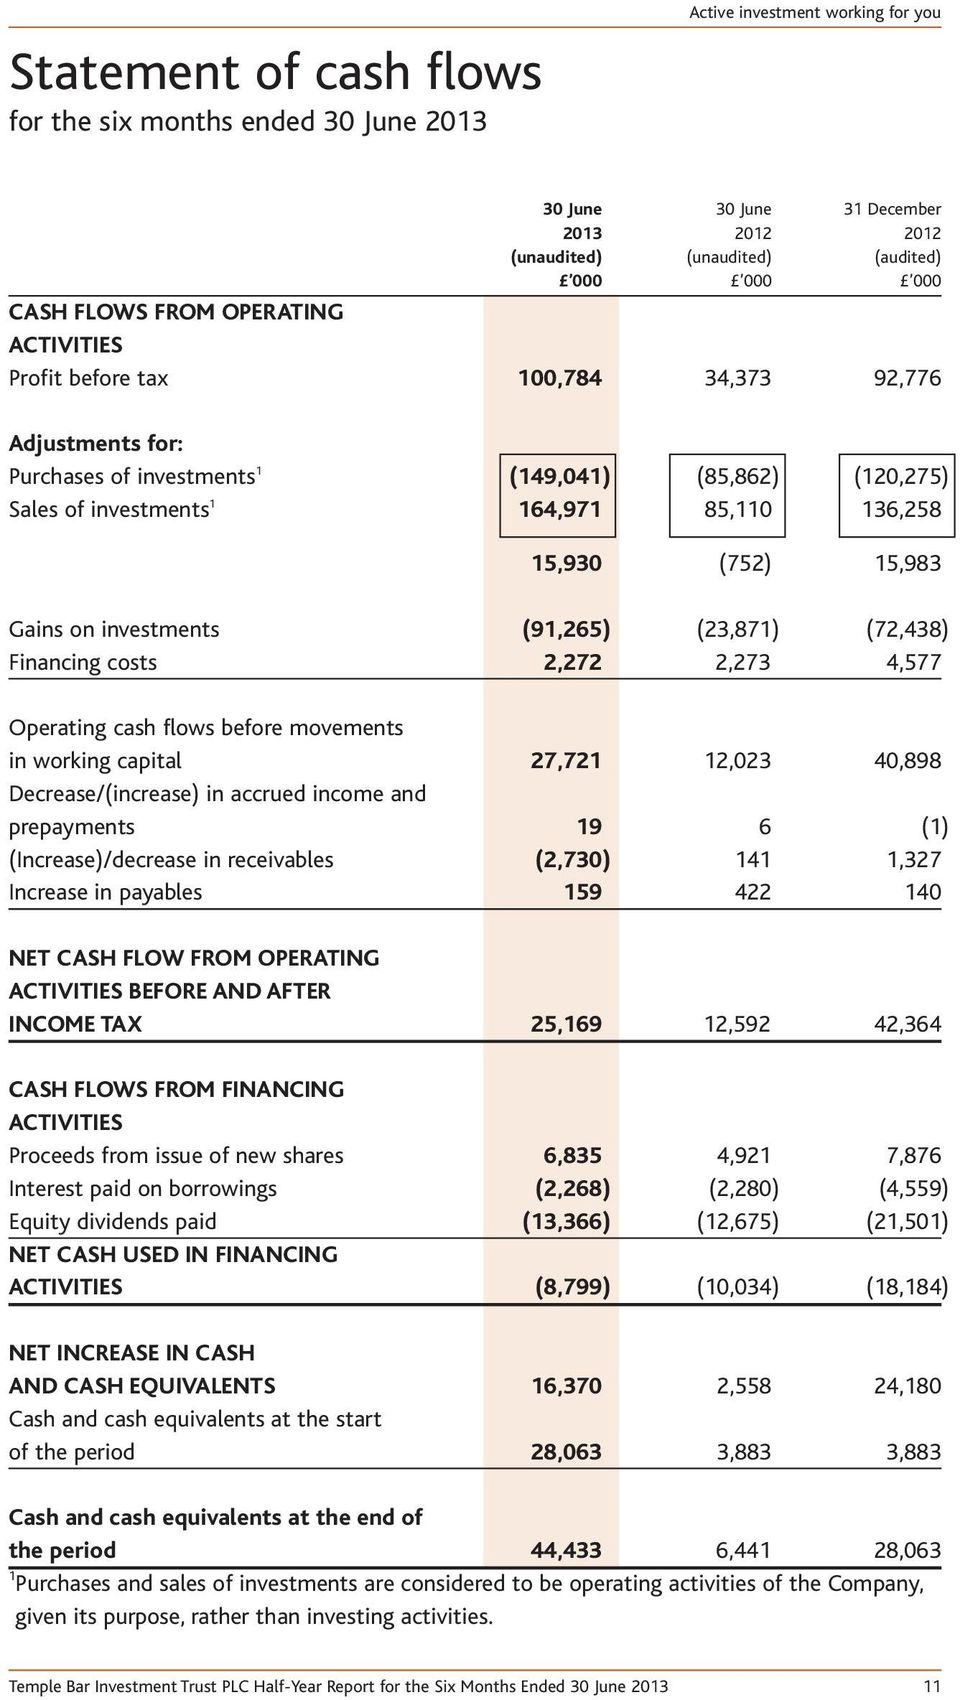 15,983 Gains on investments (91,265) (23,871) (72,438) Financing costs 2,272 2,273 4,577 Operating cash flows before movements in working capital 27,721 12,023 40,898 Decrease/(increase) in accrued